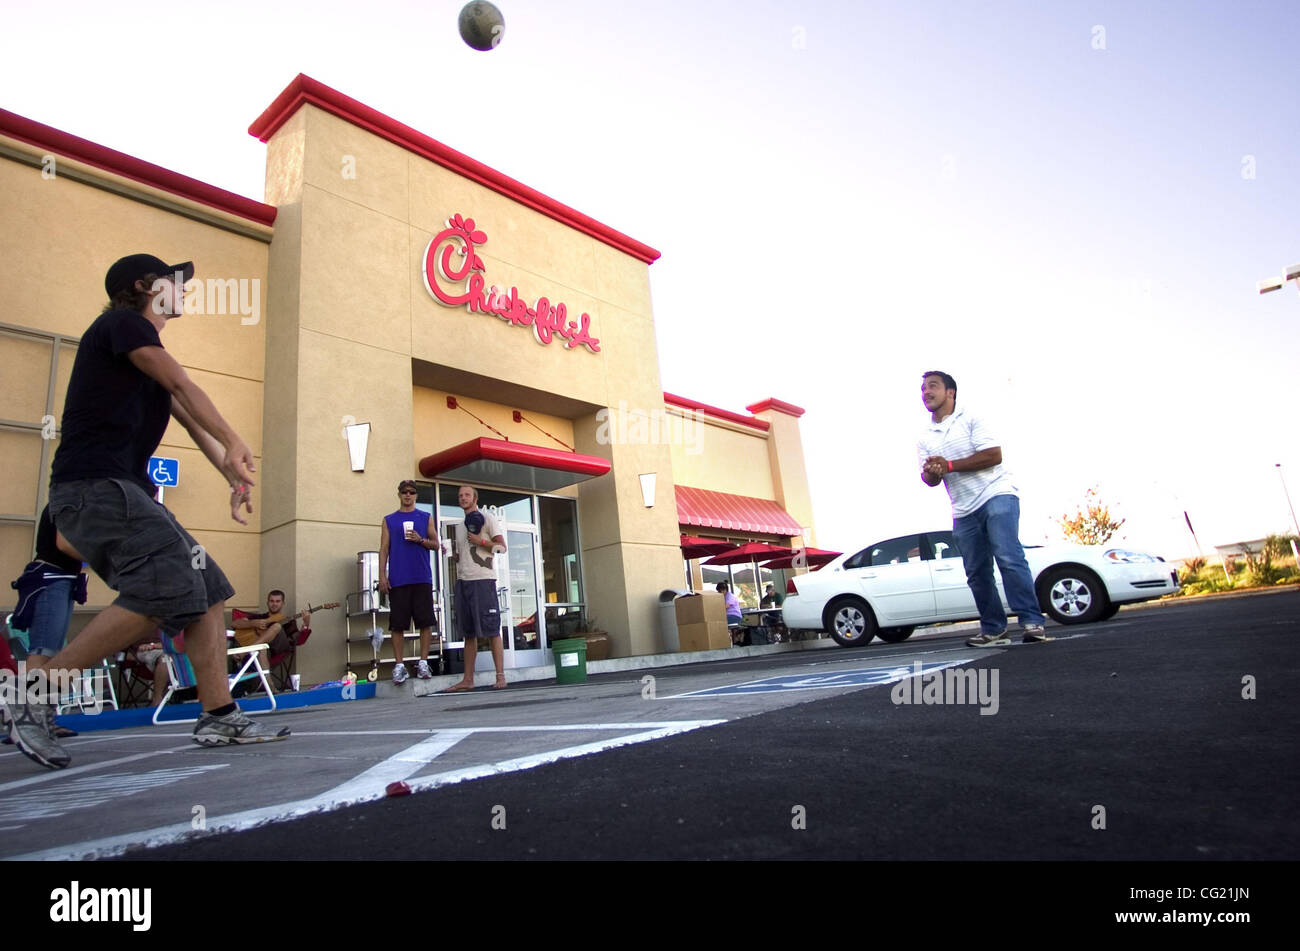 LEDE: Future Chic-Fil-A customers Josh Moog, left, and Jose Perez pass time with volleyball in the parking lot of - Stock Image